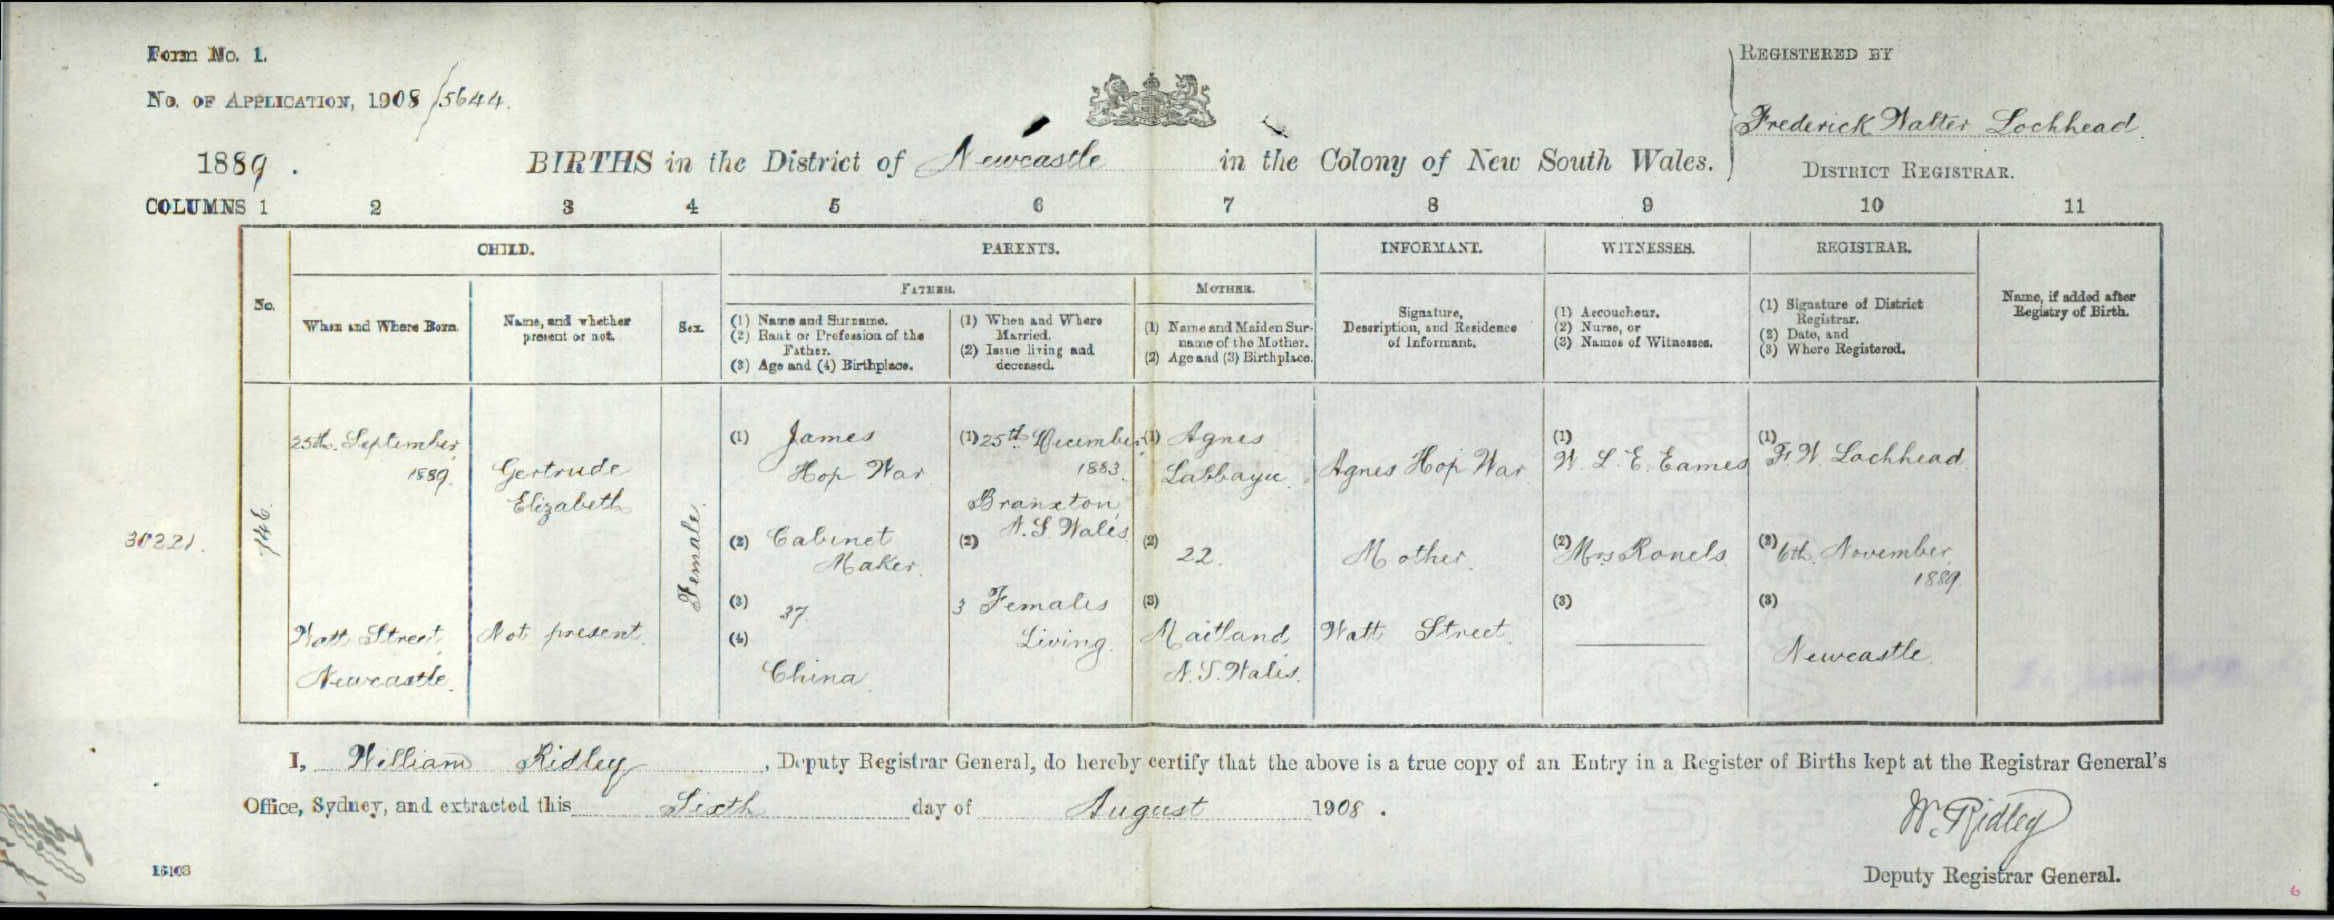 sydney birth records - photo#5